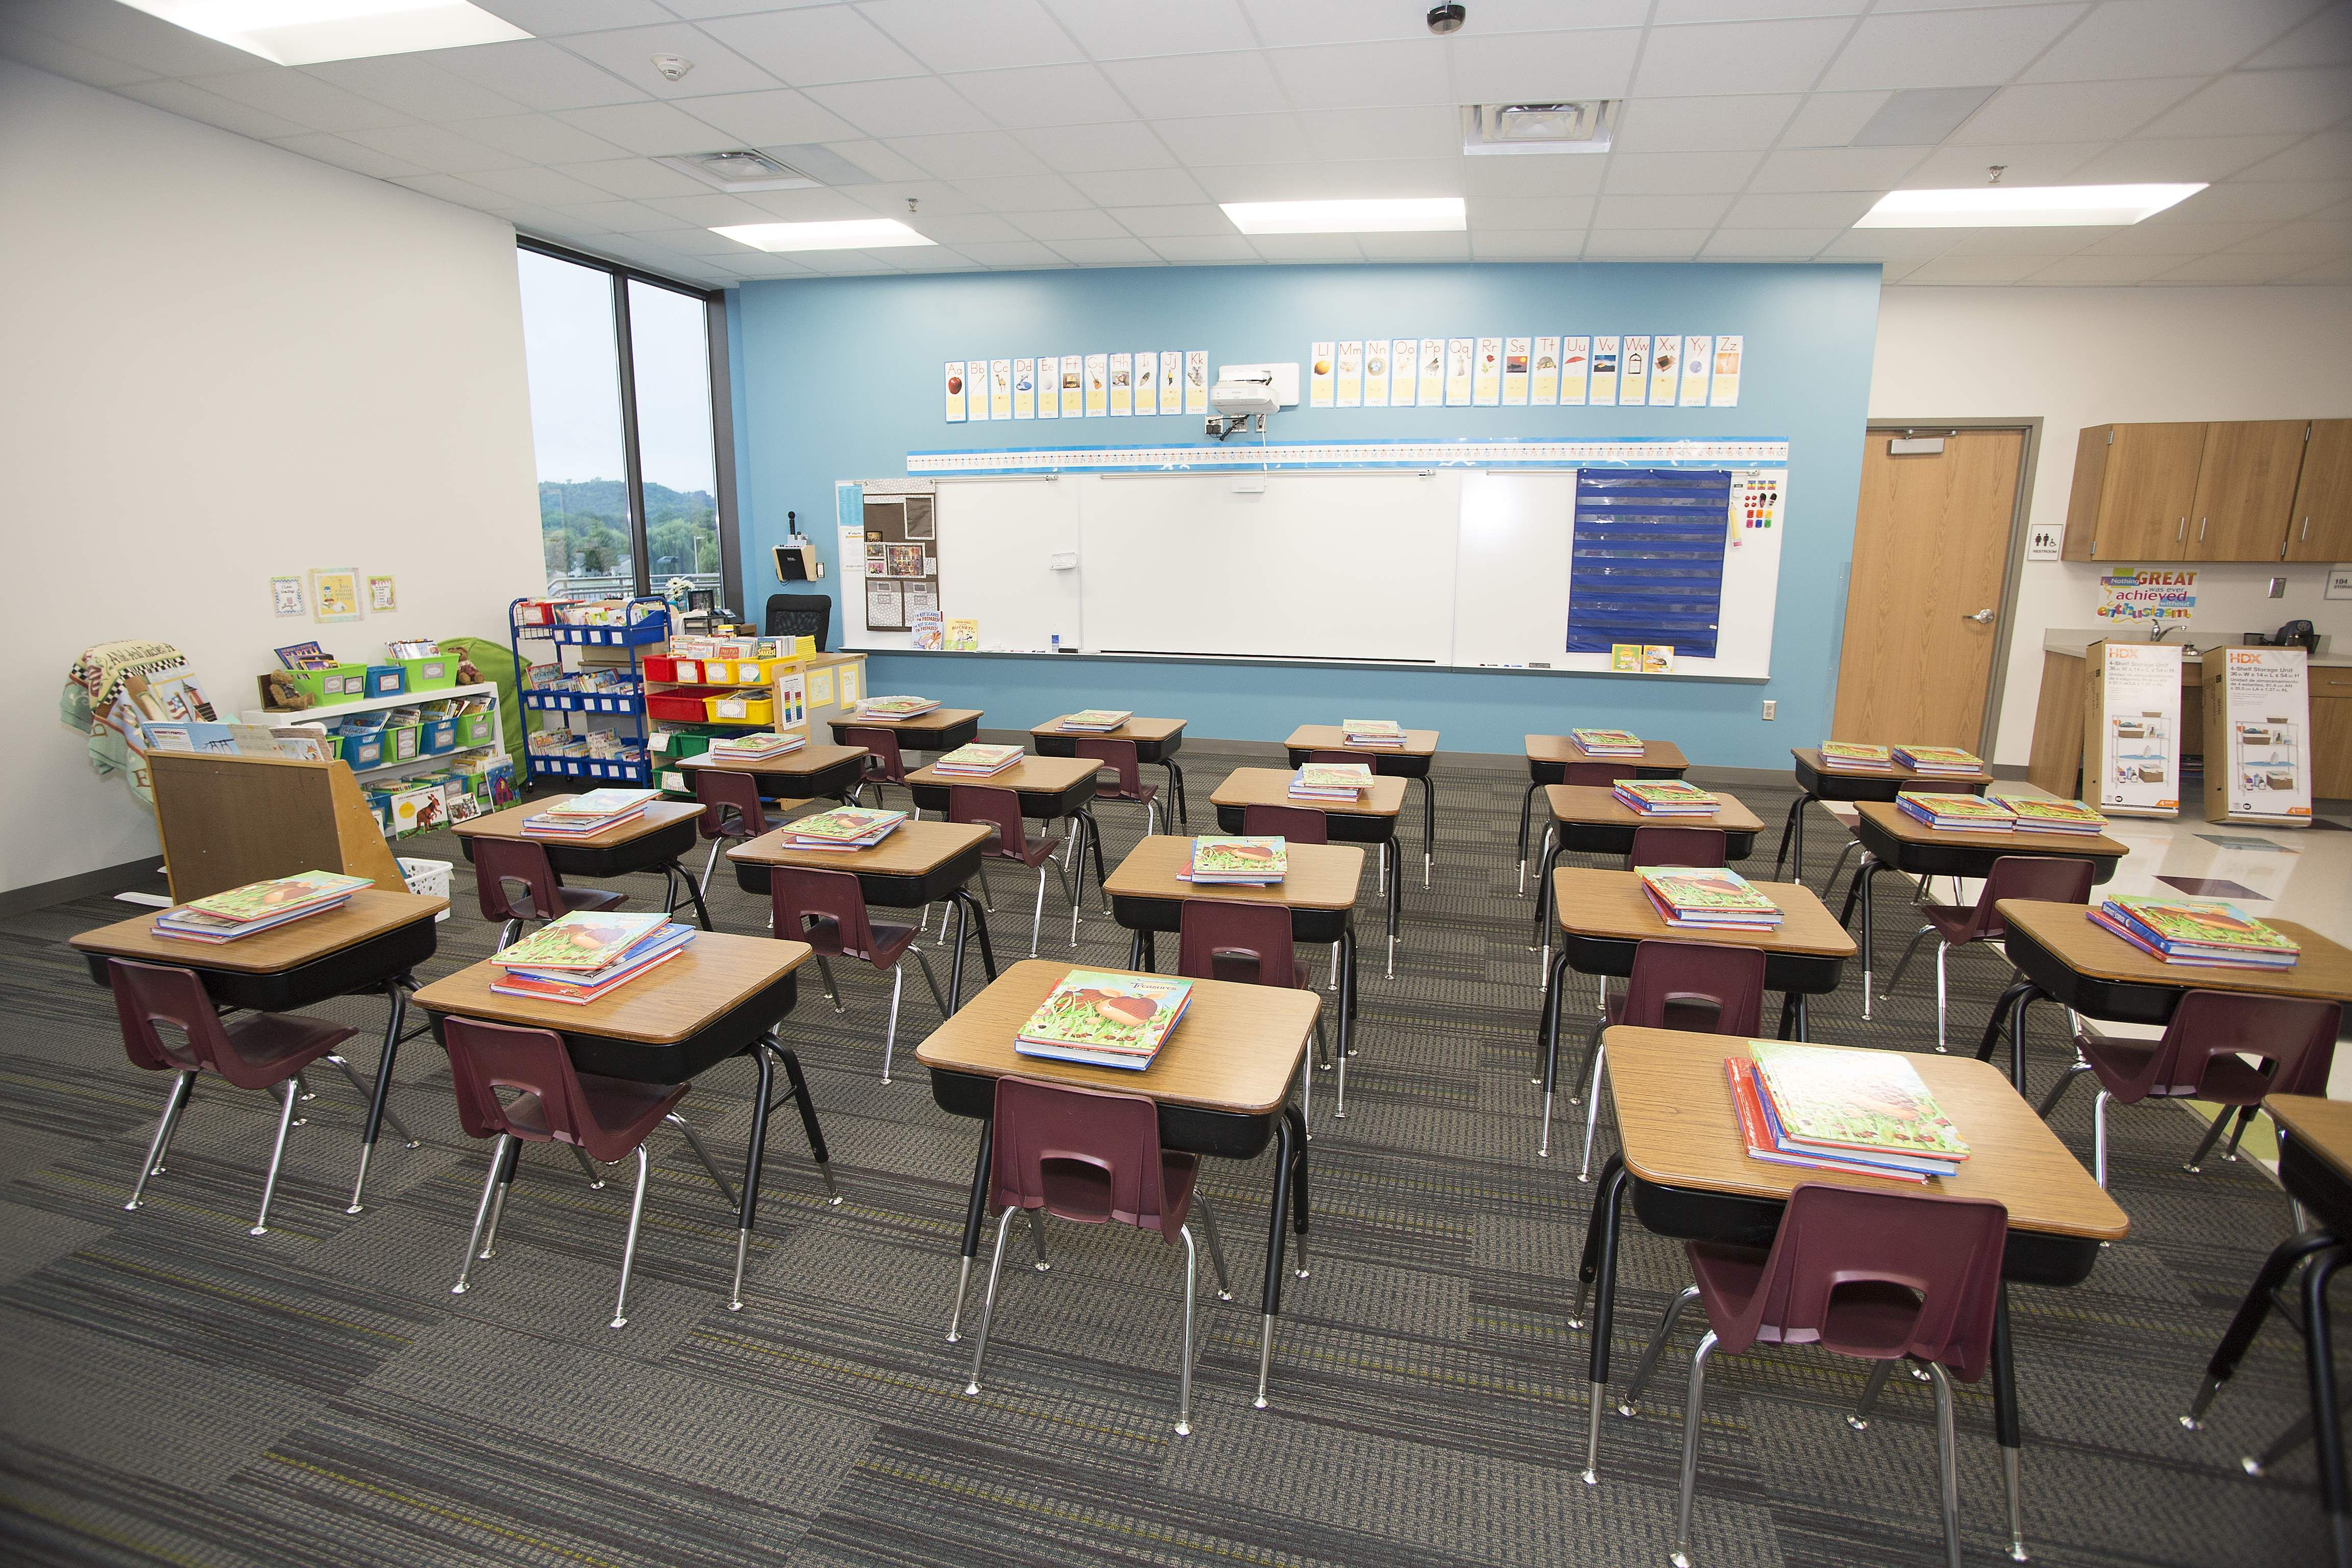 Hill Elementary School -- Spaces4Learning